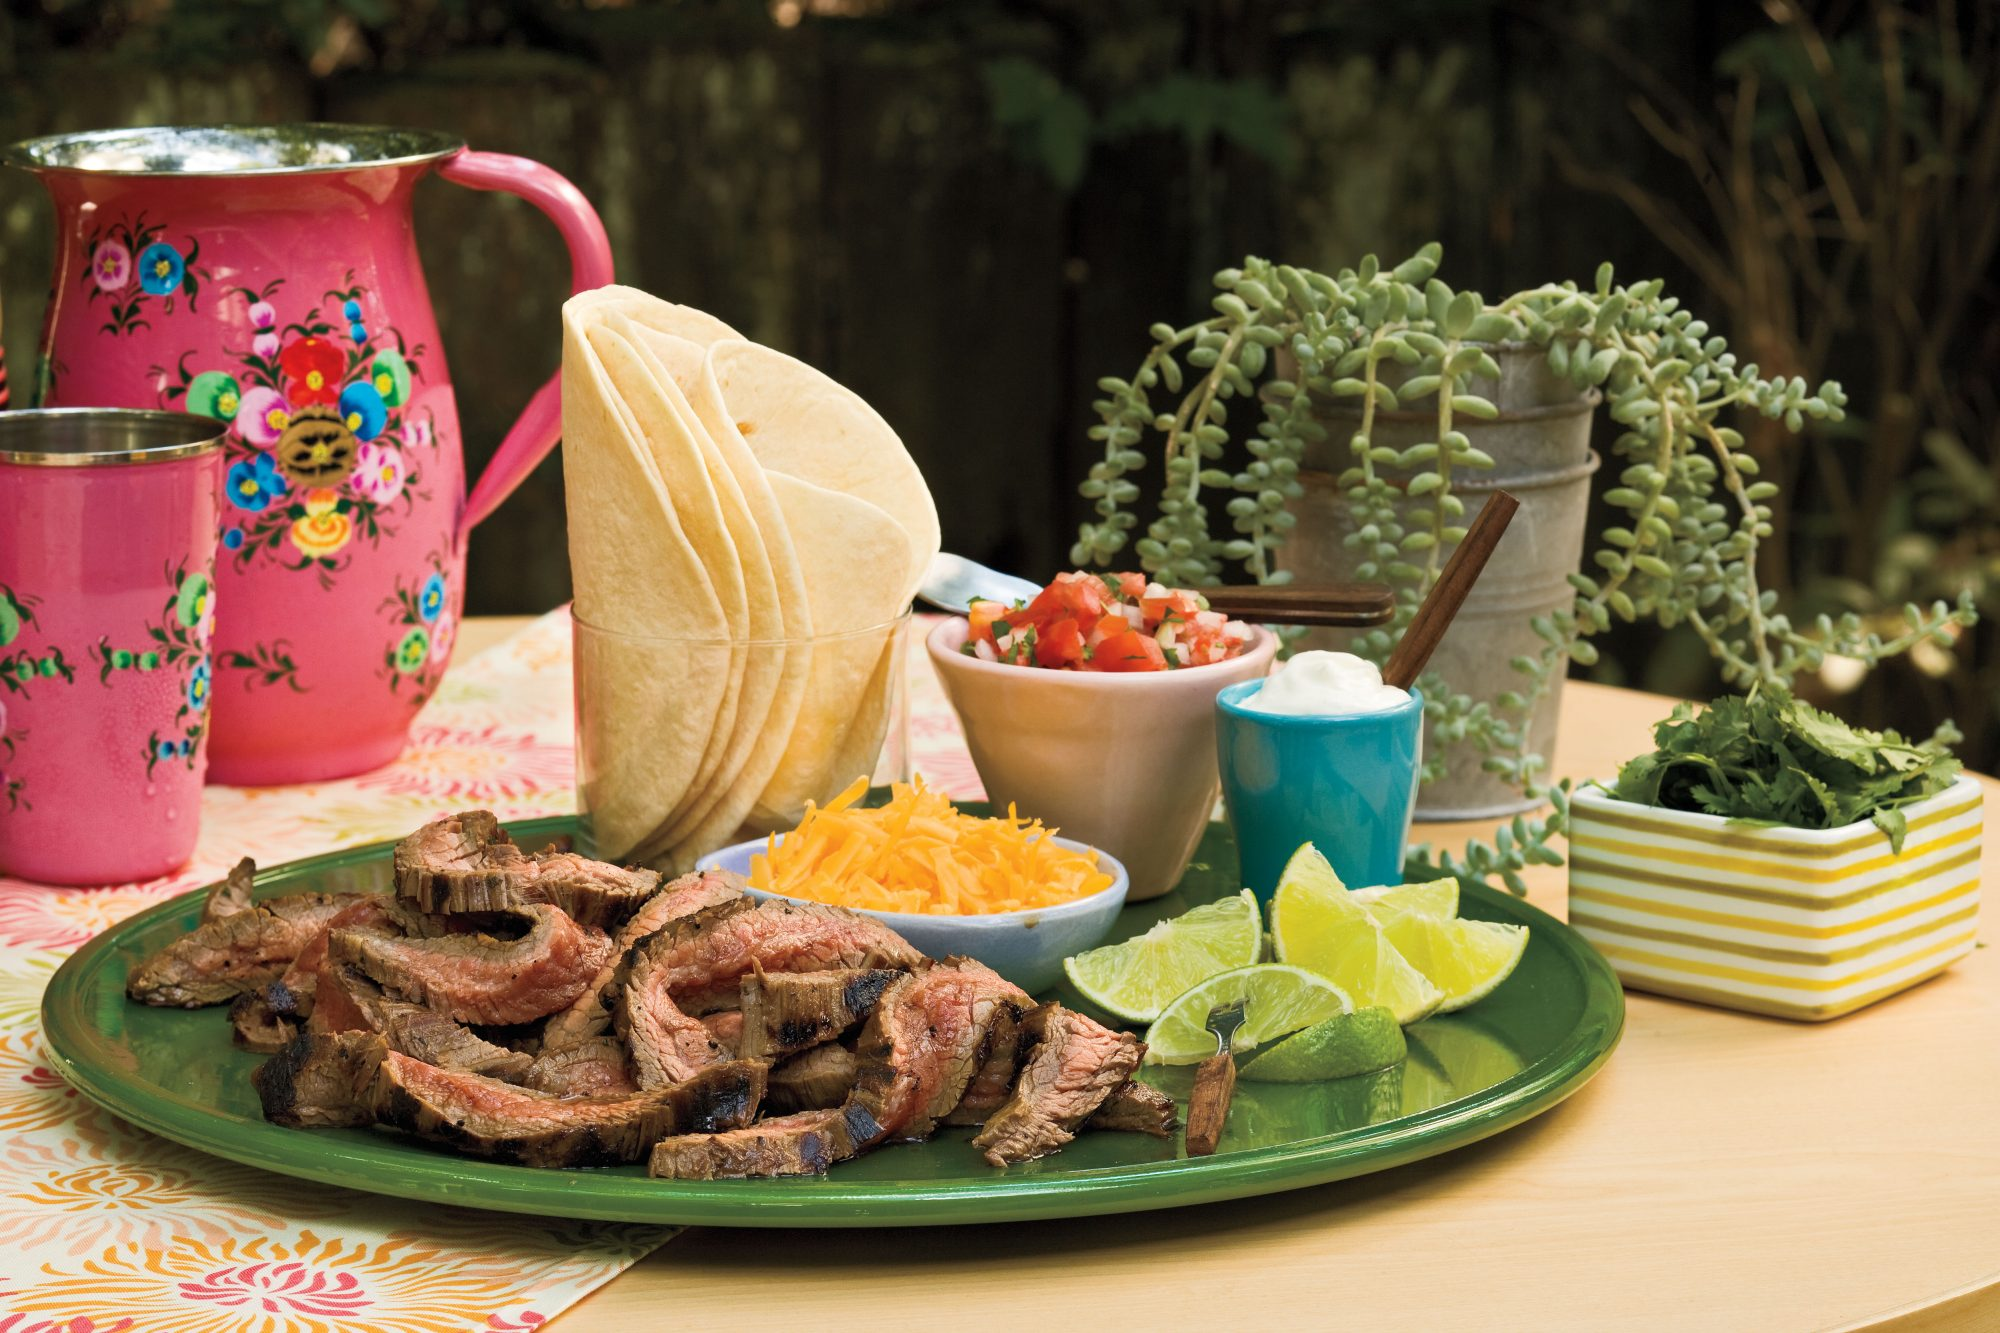 Quick and Easy Dinner Recipes: Beef Fajitas With Pico de Gallo